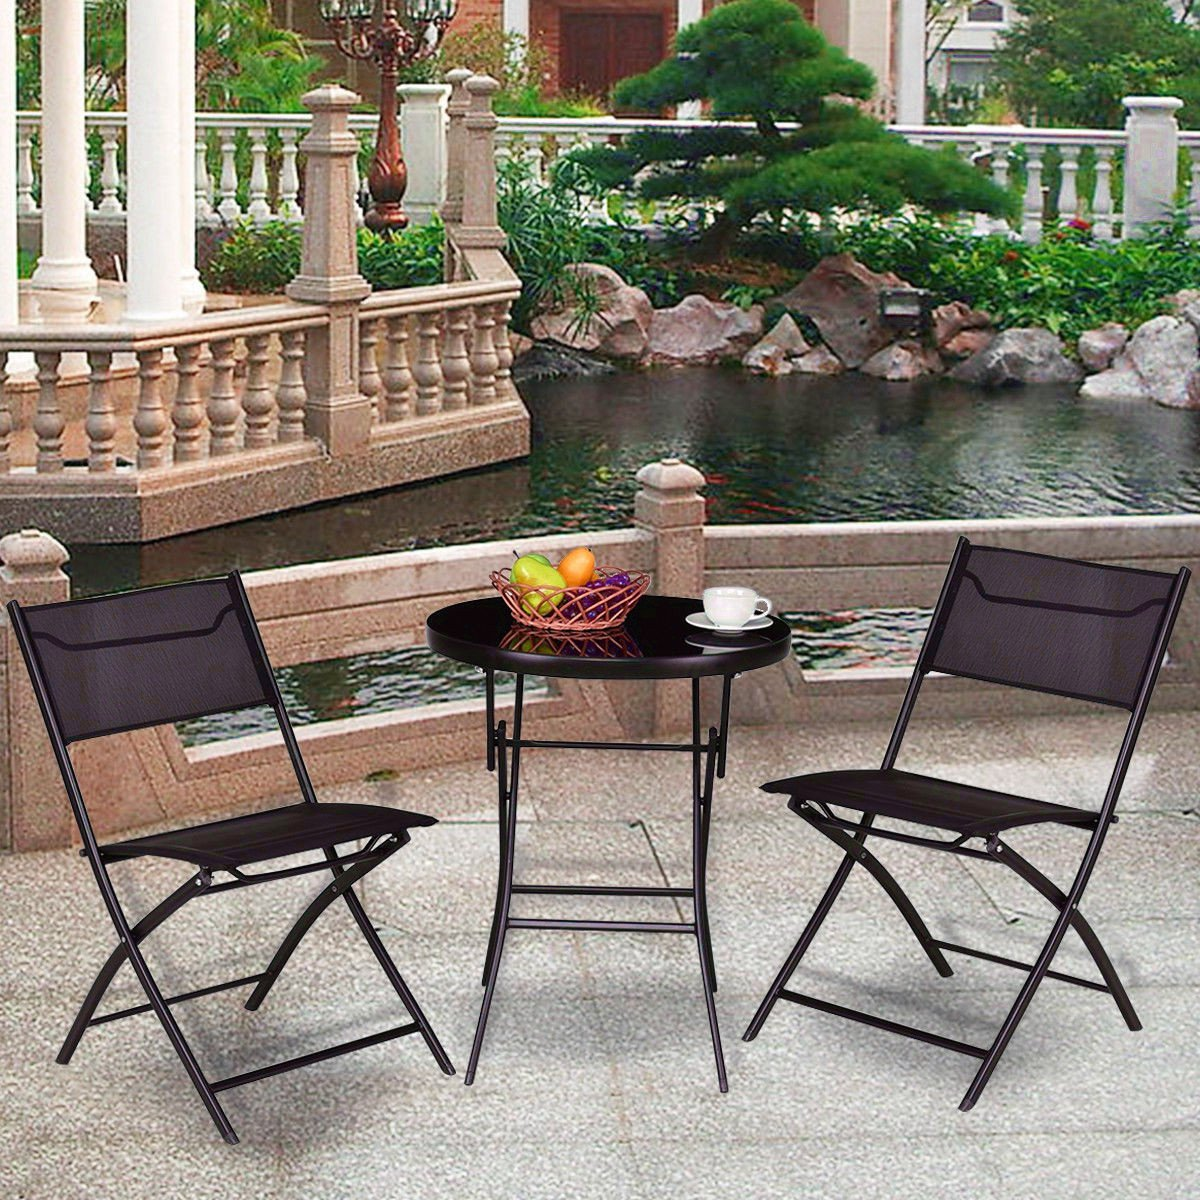 Portable Folding Round Bistro Table Chair Set Outdoor Foldable Lightweight Durable Modern, Coffee Table Set, Practical, Patio, Backyard, Balcony Terrace, Garden, Pool Side & e-book by jn.widetrade